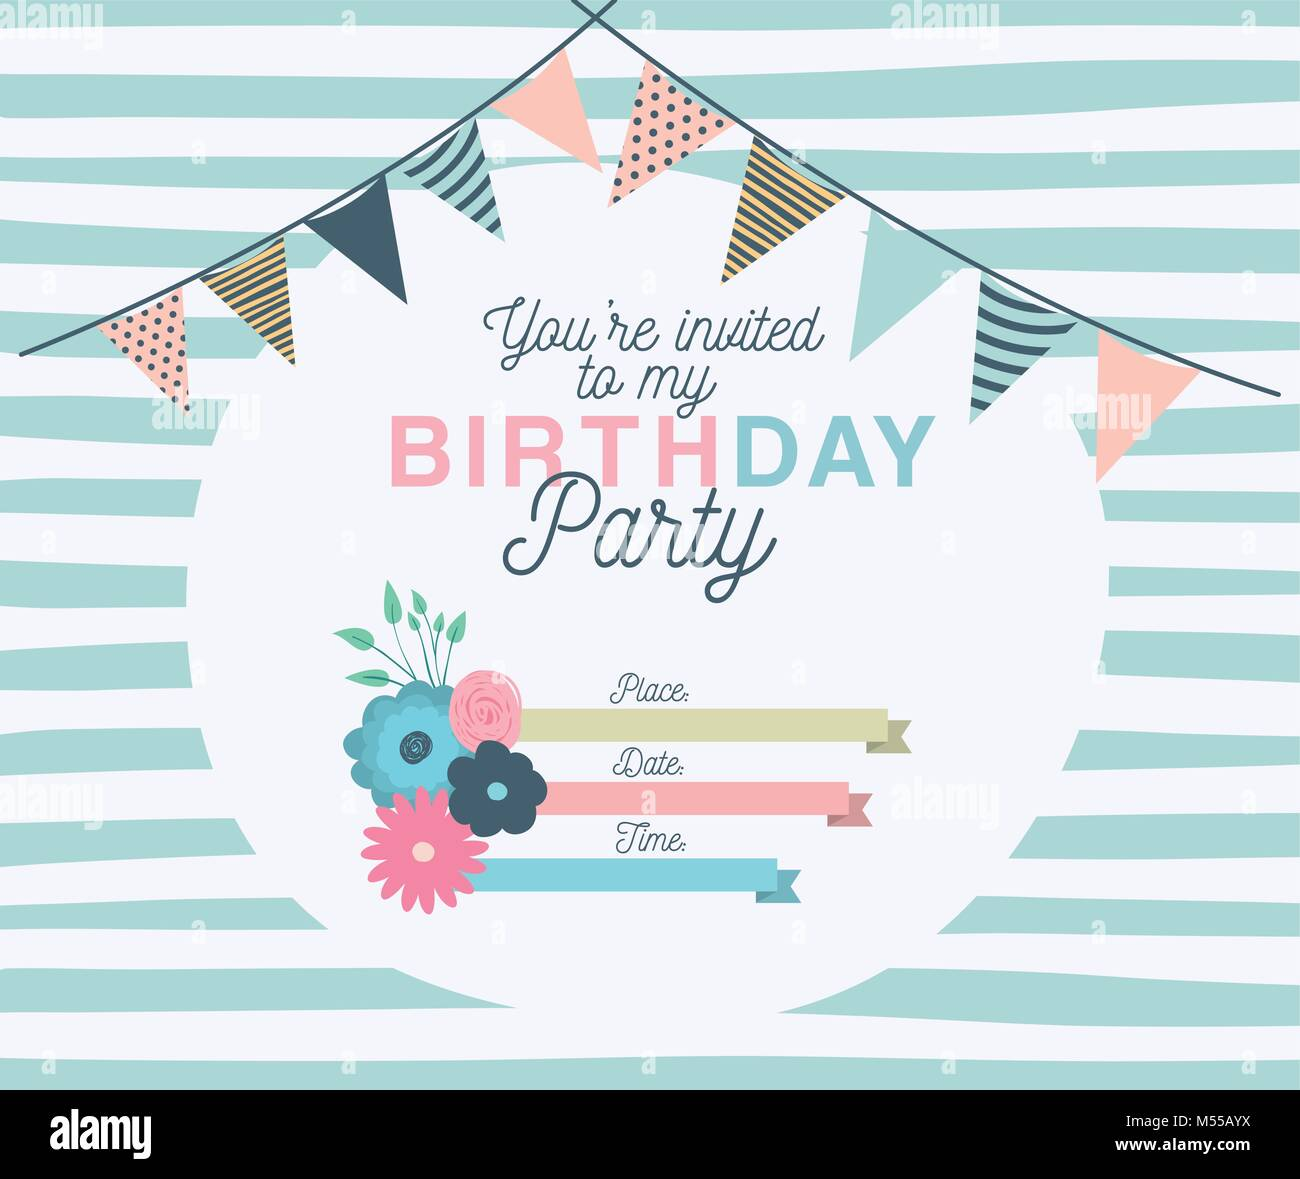 Happy Birthday Party Invitation With Floral Decoration